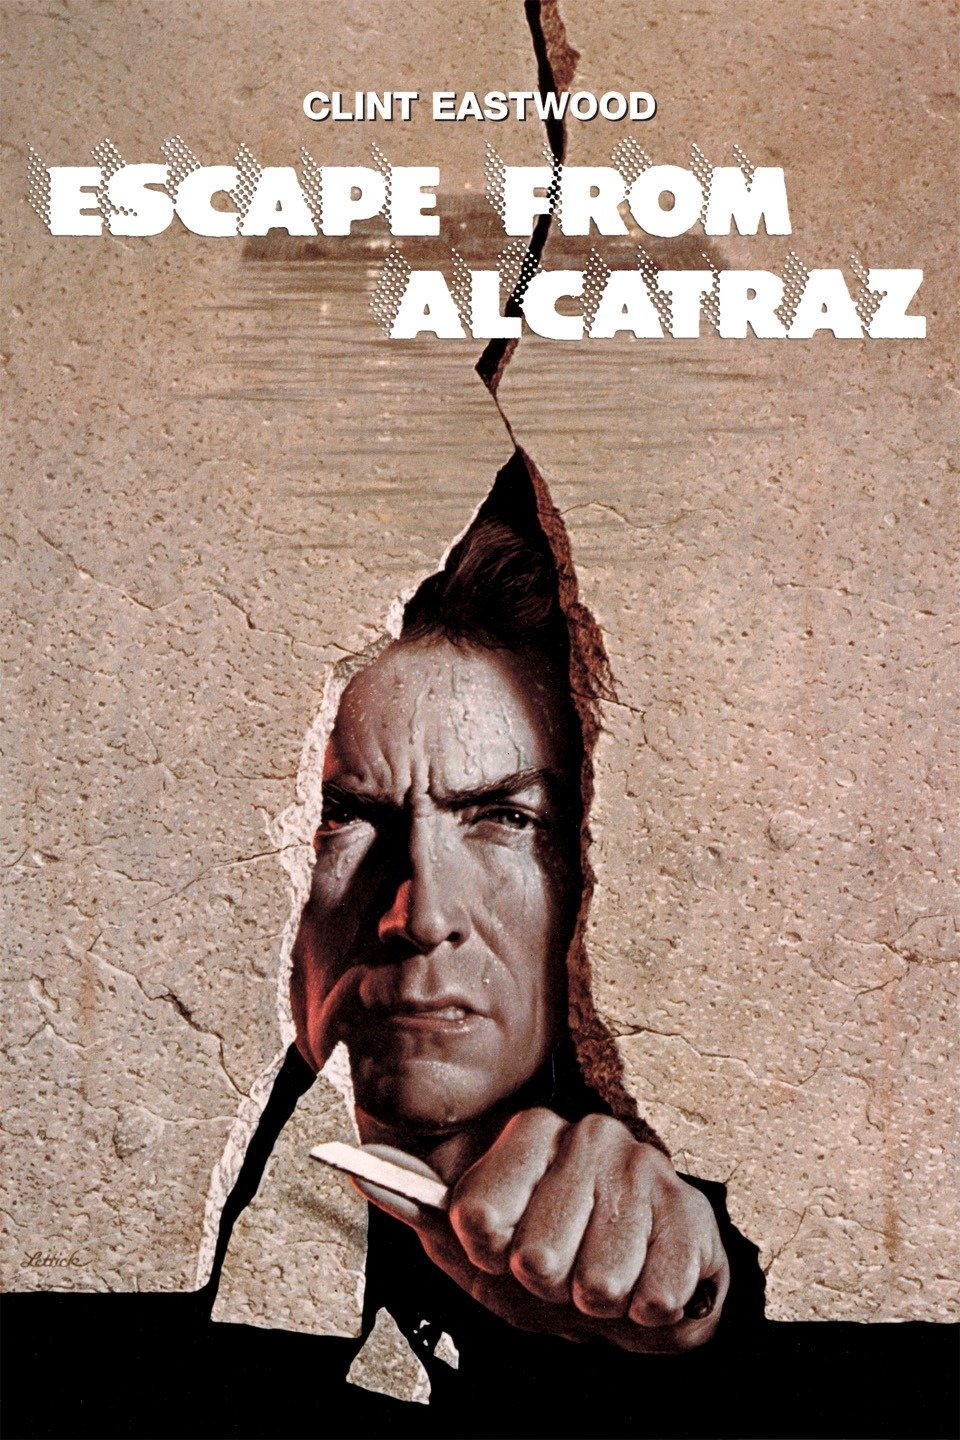 — ESCAPE FROM ALCATRAZ   Frank Morris (Clint Eastwood), a hardened con with a history of prison breaks, is sent to serve the rest of his life sentence at Alcatraz -- America's most infamously brutal and inescapable maximum security prison. Morris quickly realizes the prison's dehumanizing effects and clashes with its cruel warden (Patrick McGoohan). Fed up with life at Alcatraz, Morris and two convict brothers (Fred Ward, Jack Thibeau) meticulously plan the unthinkable: an escape from the island.